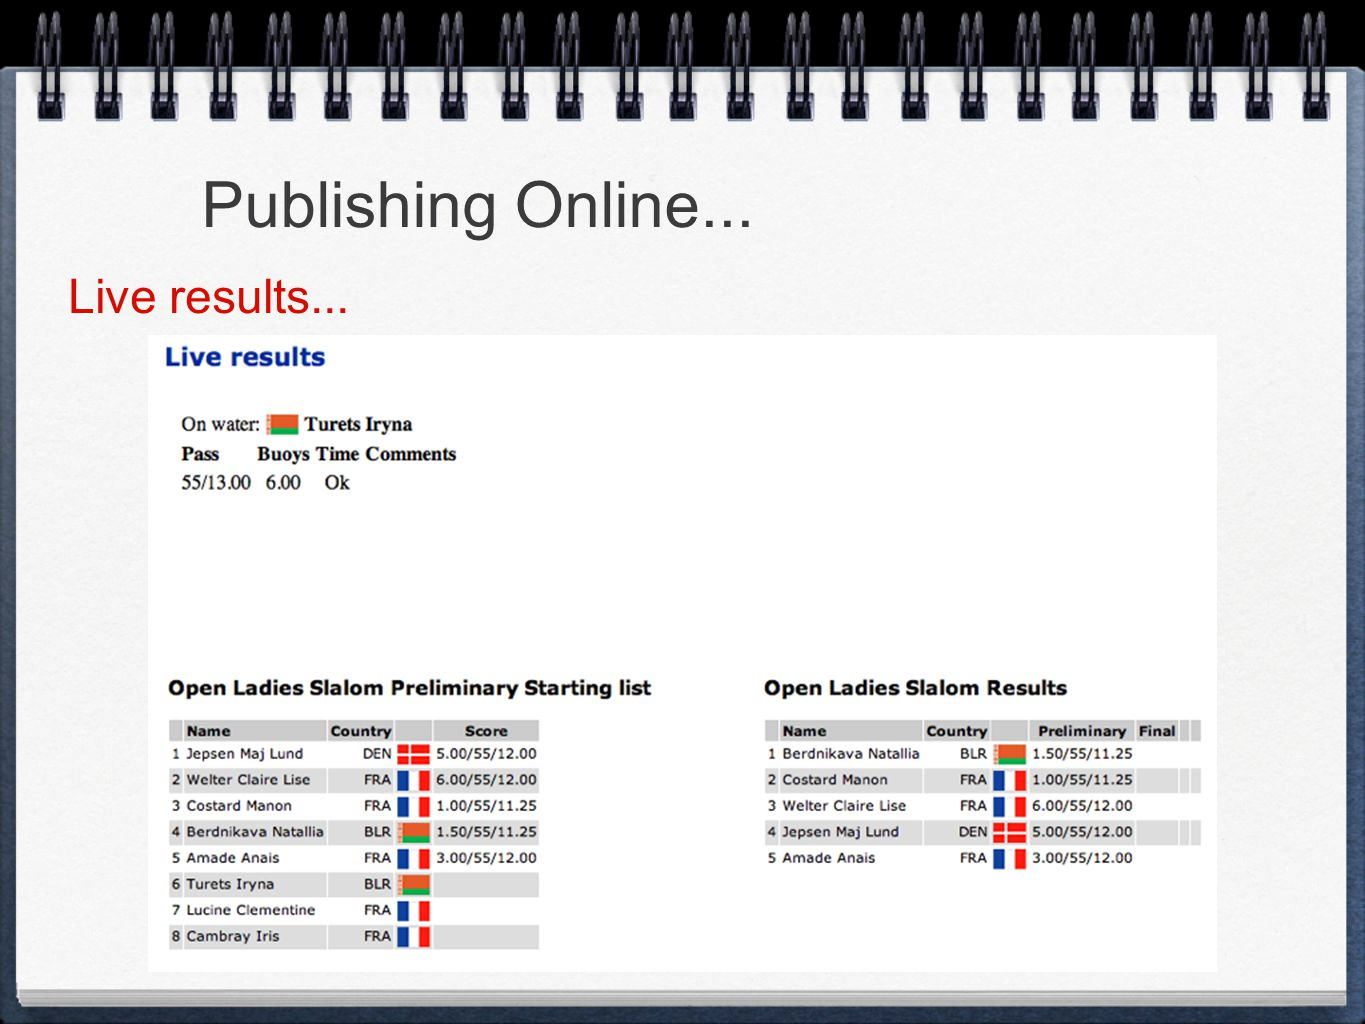 Publishing Online... Live results...